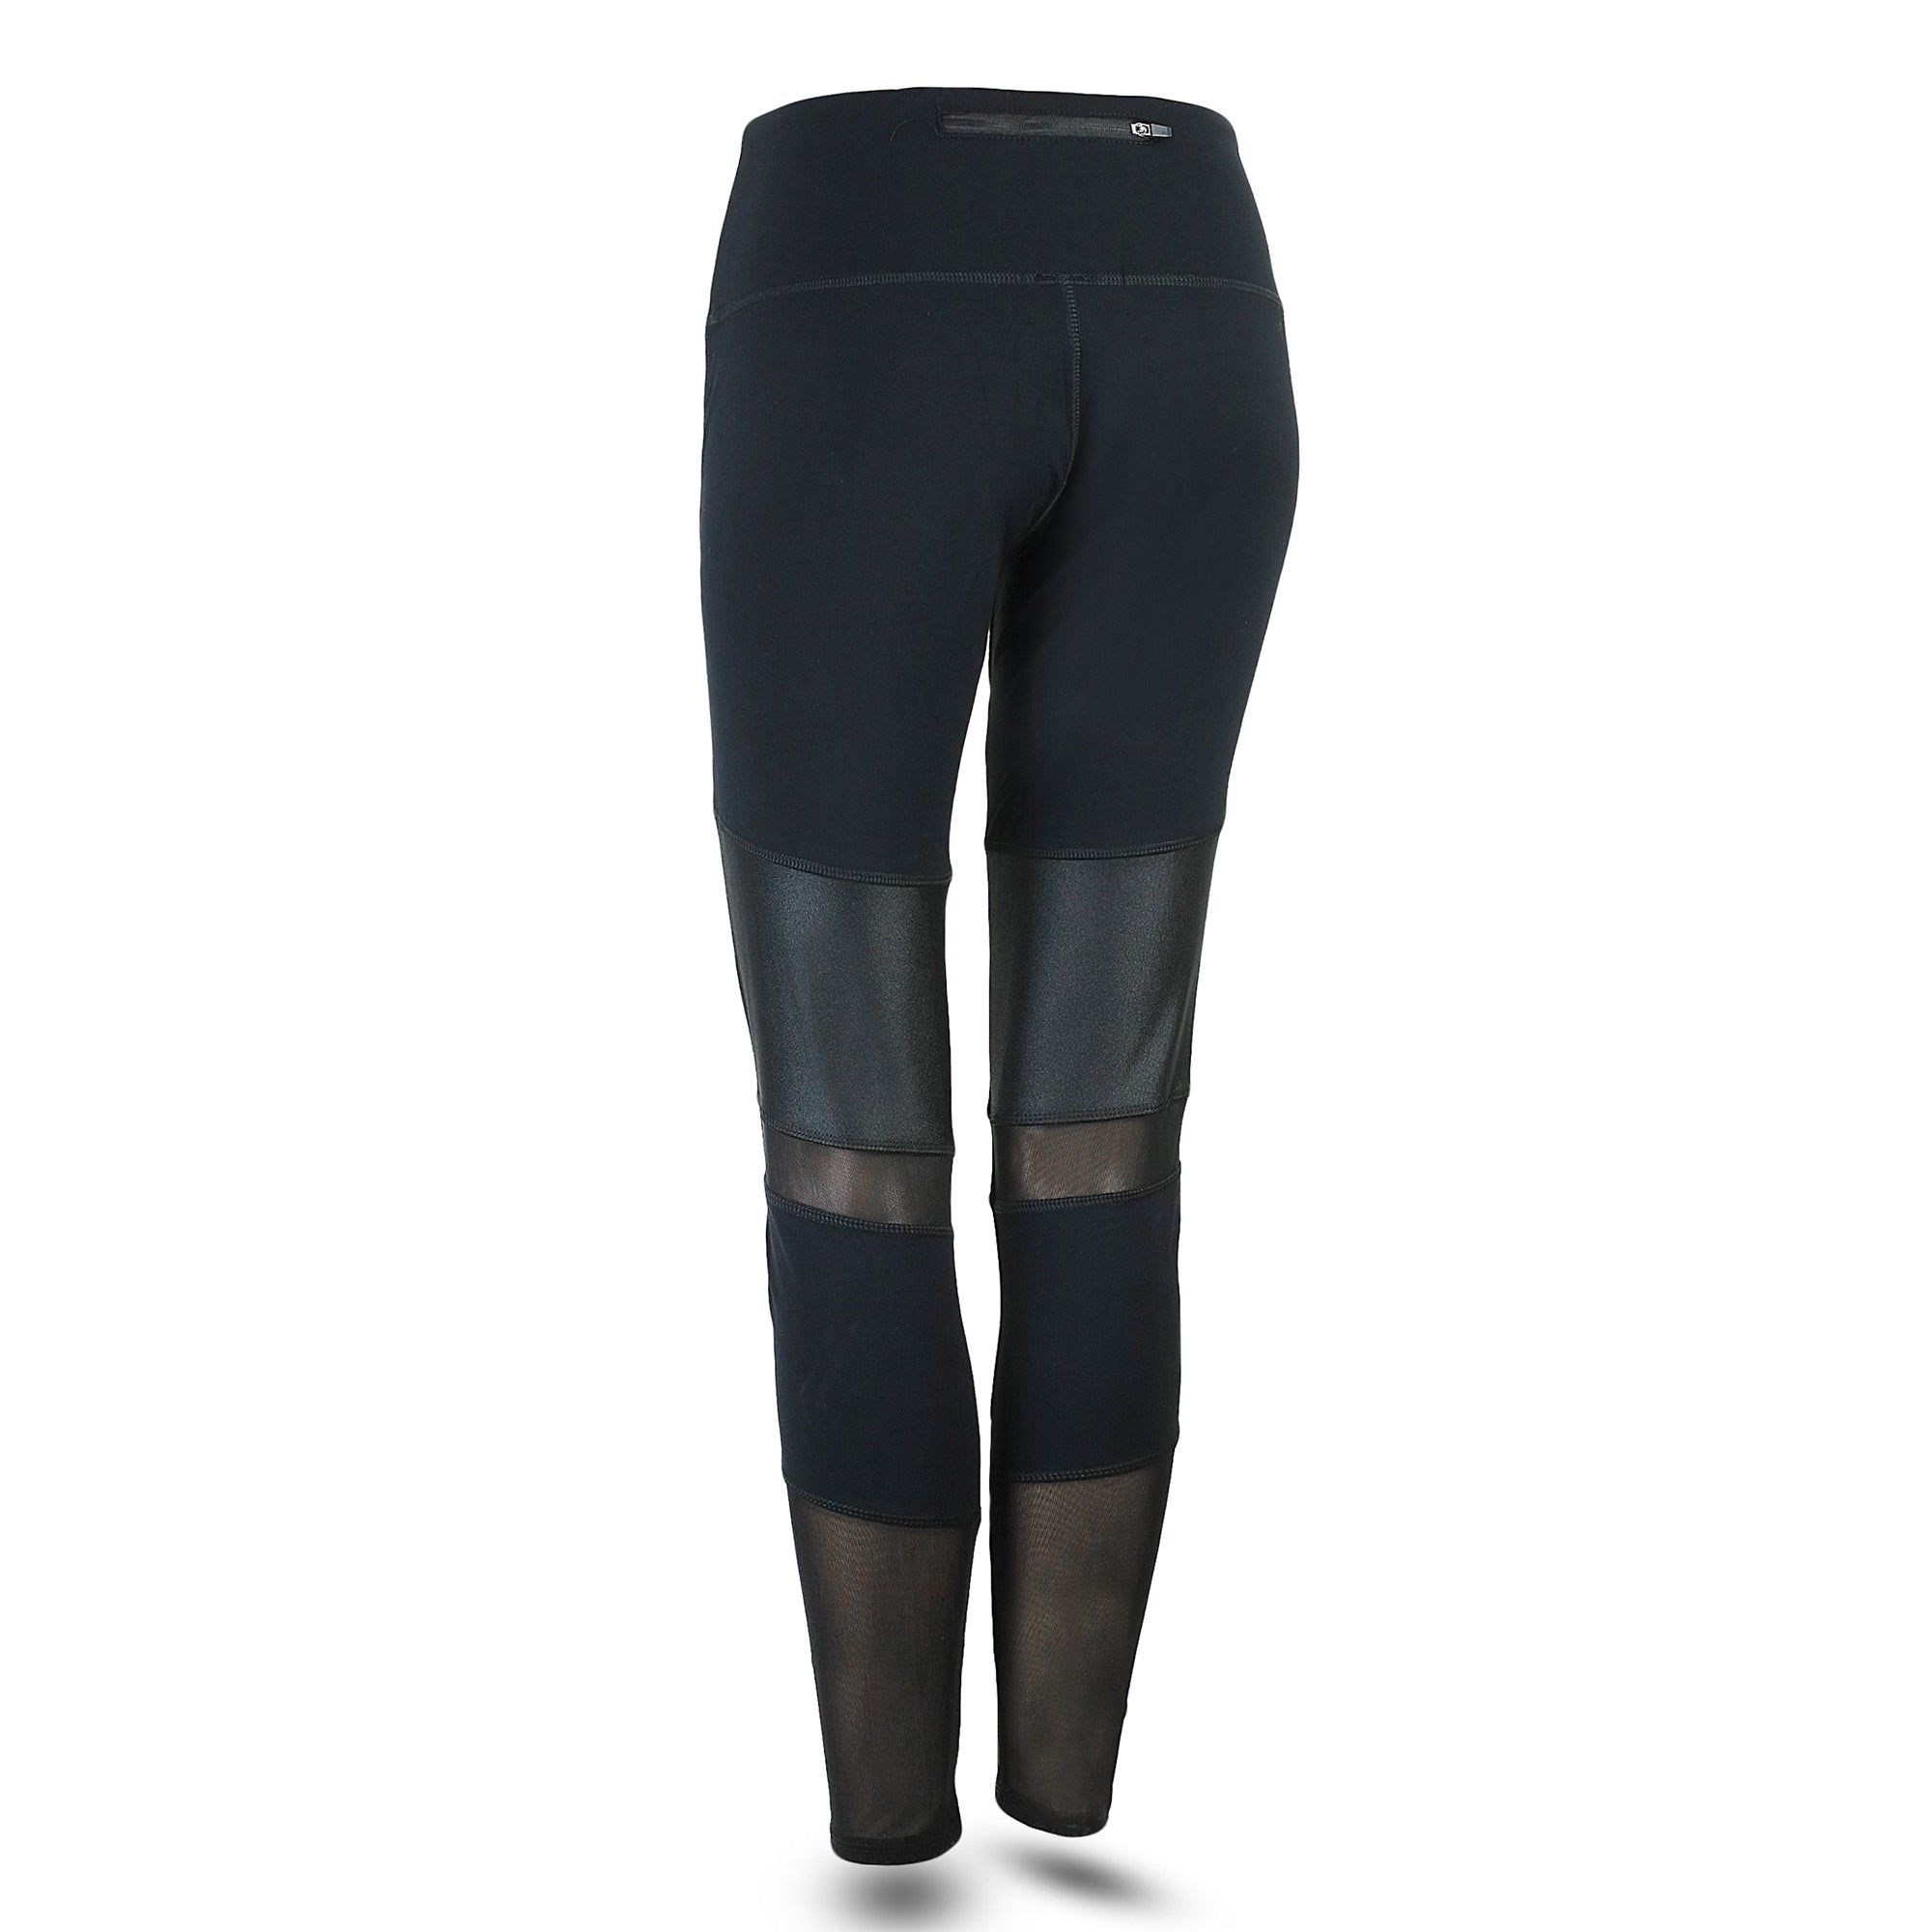 ***NEW*** ON-TREND BLACK LEGGINGS - WITH LEATHER-LOOK AND MESH INSERTS